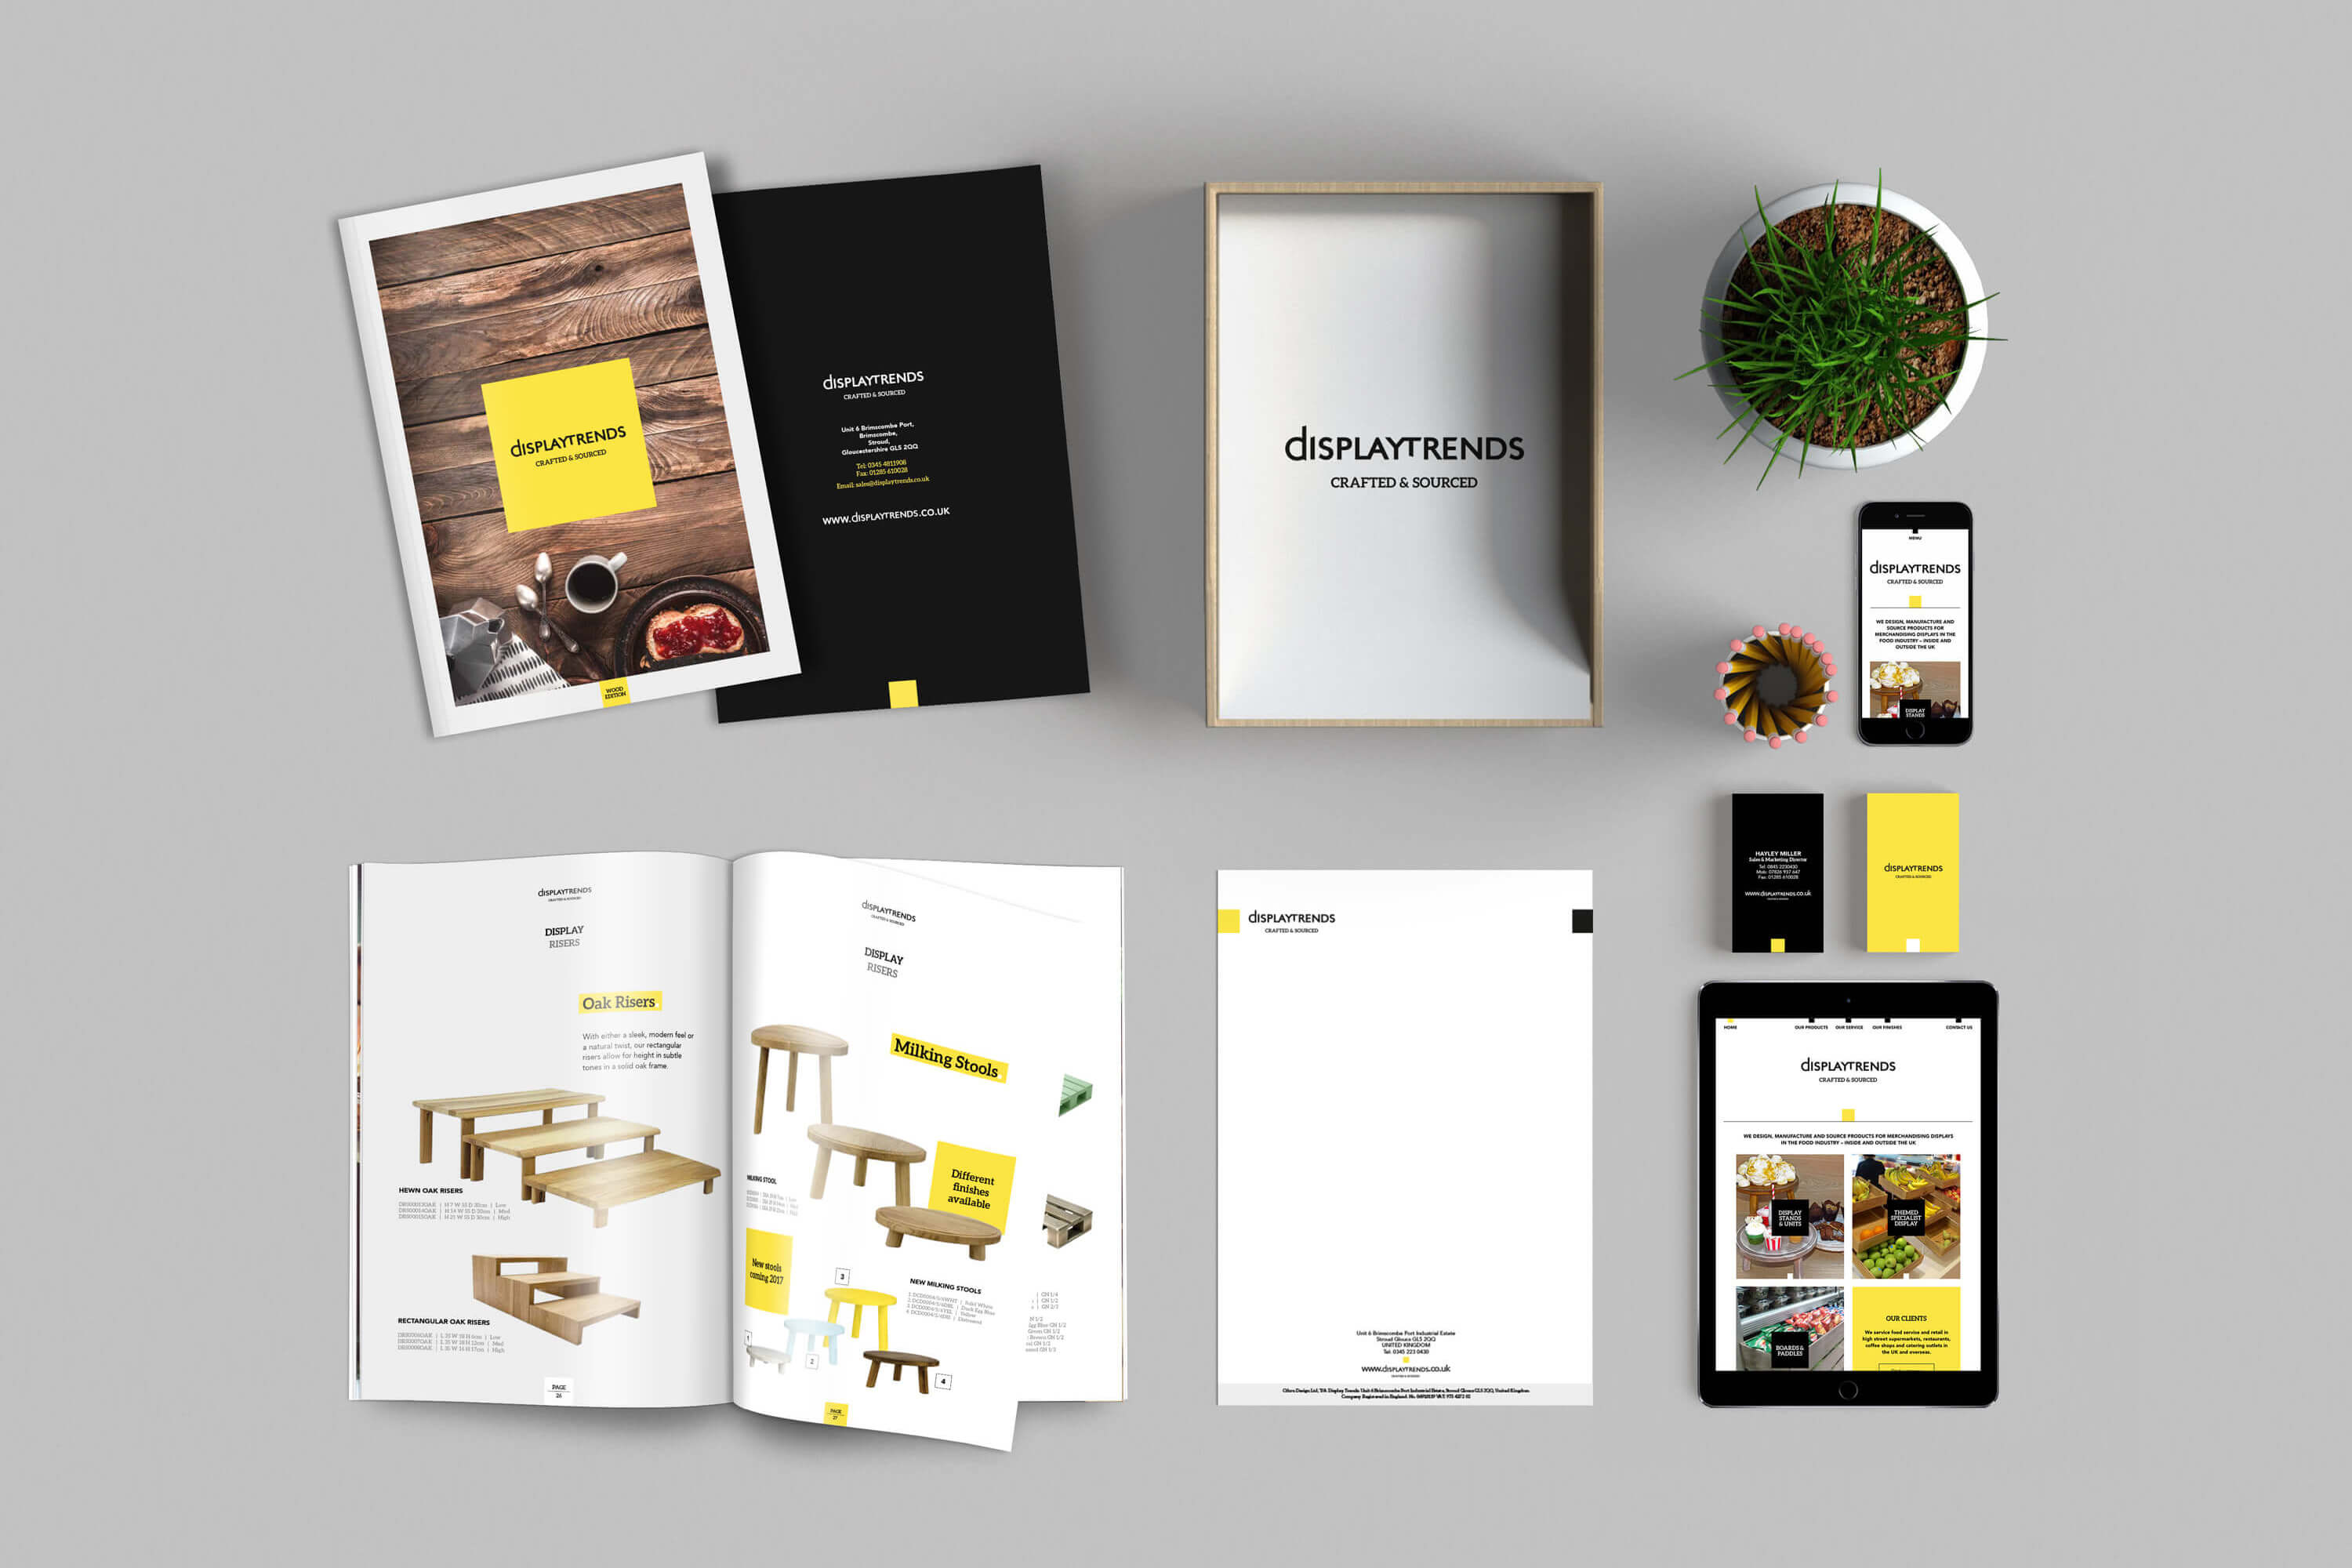 Shot looking down on Display Trends catalogue, letterhead, business cards and website design